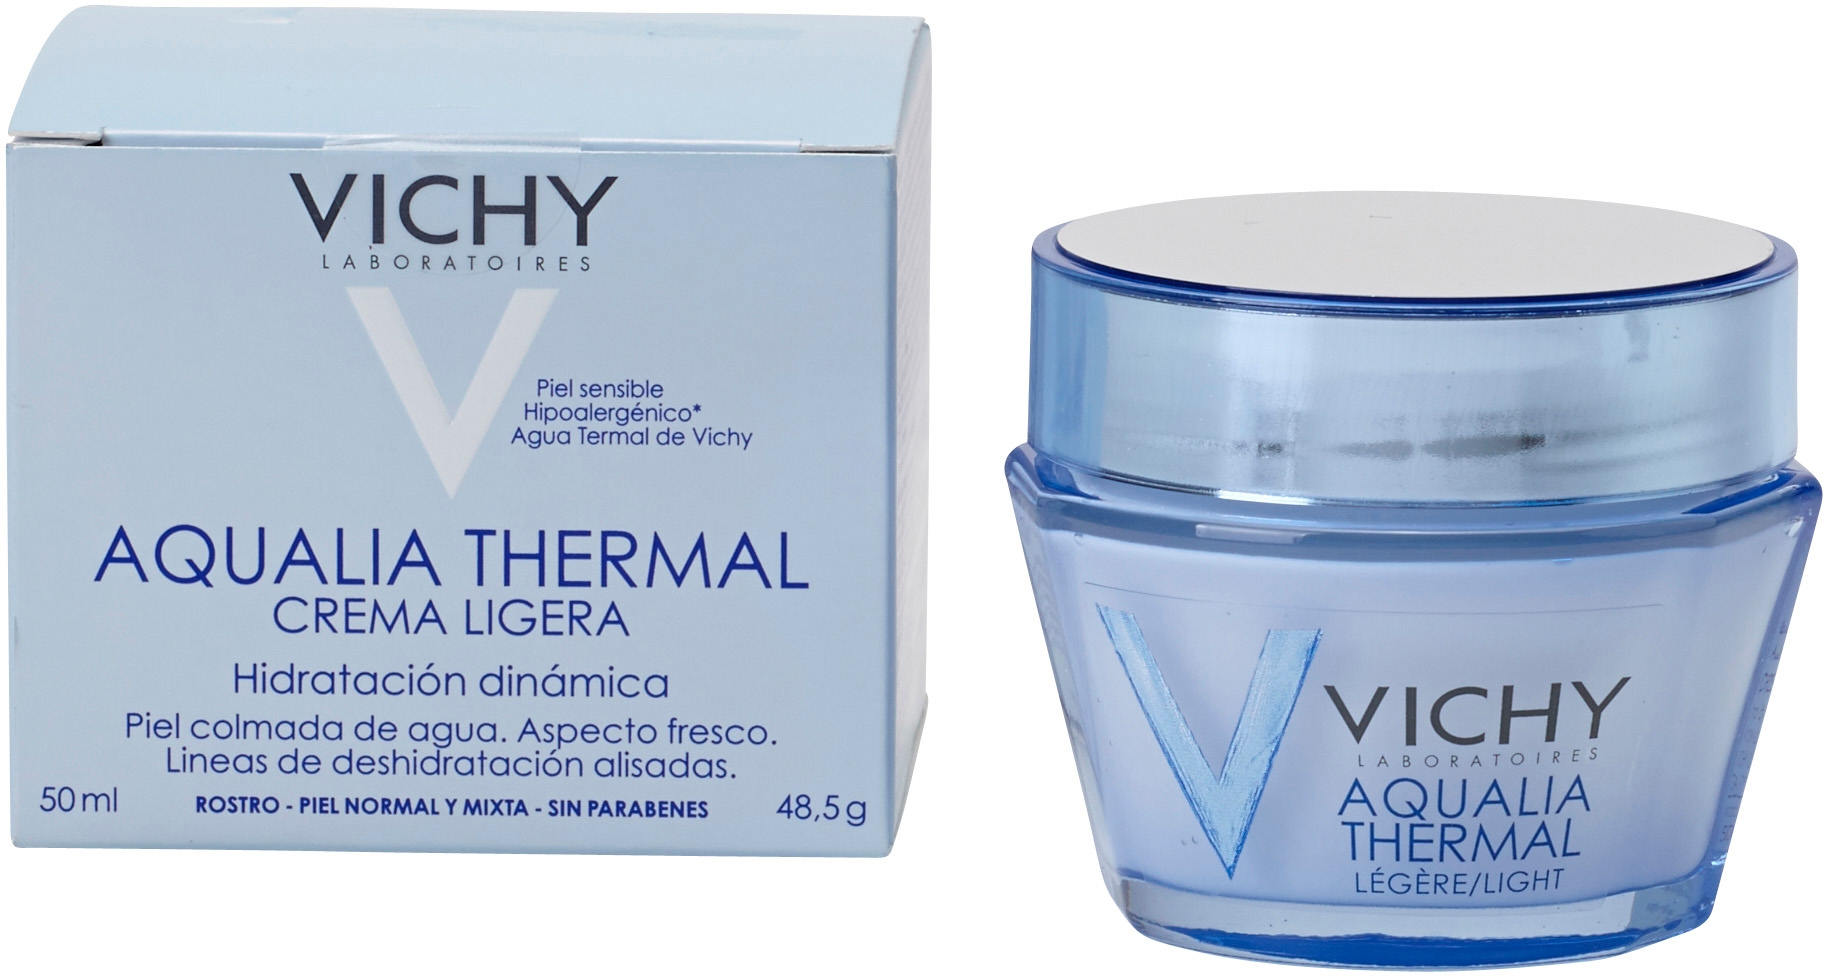 Aqualia Thermal Crema Ligera